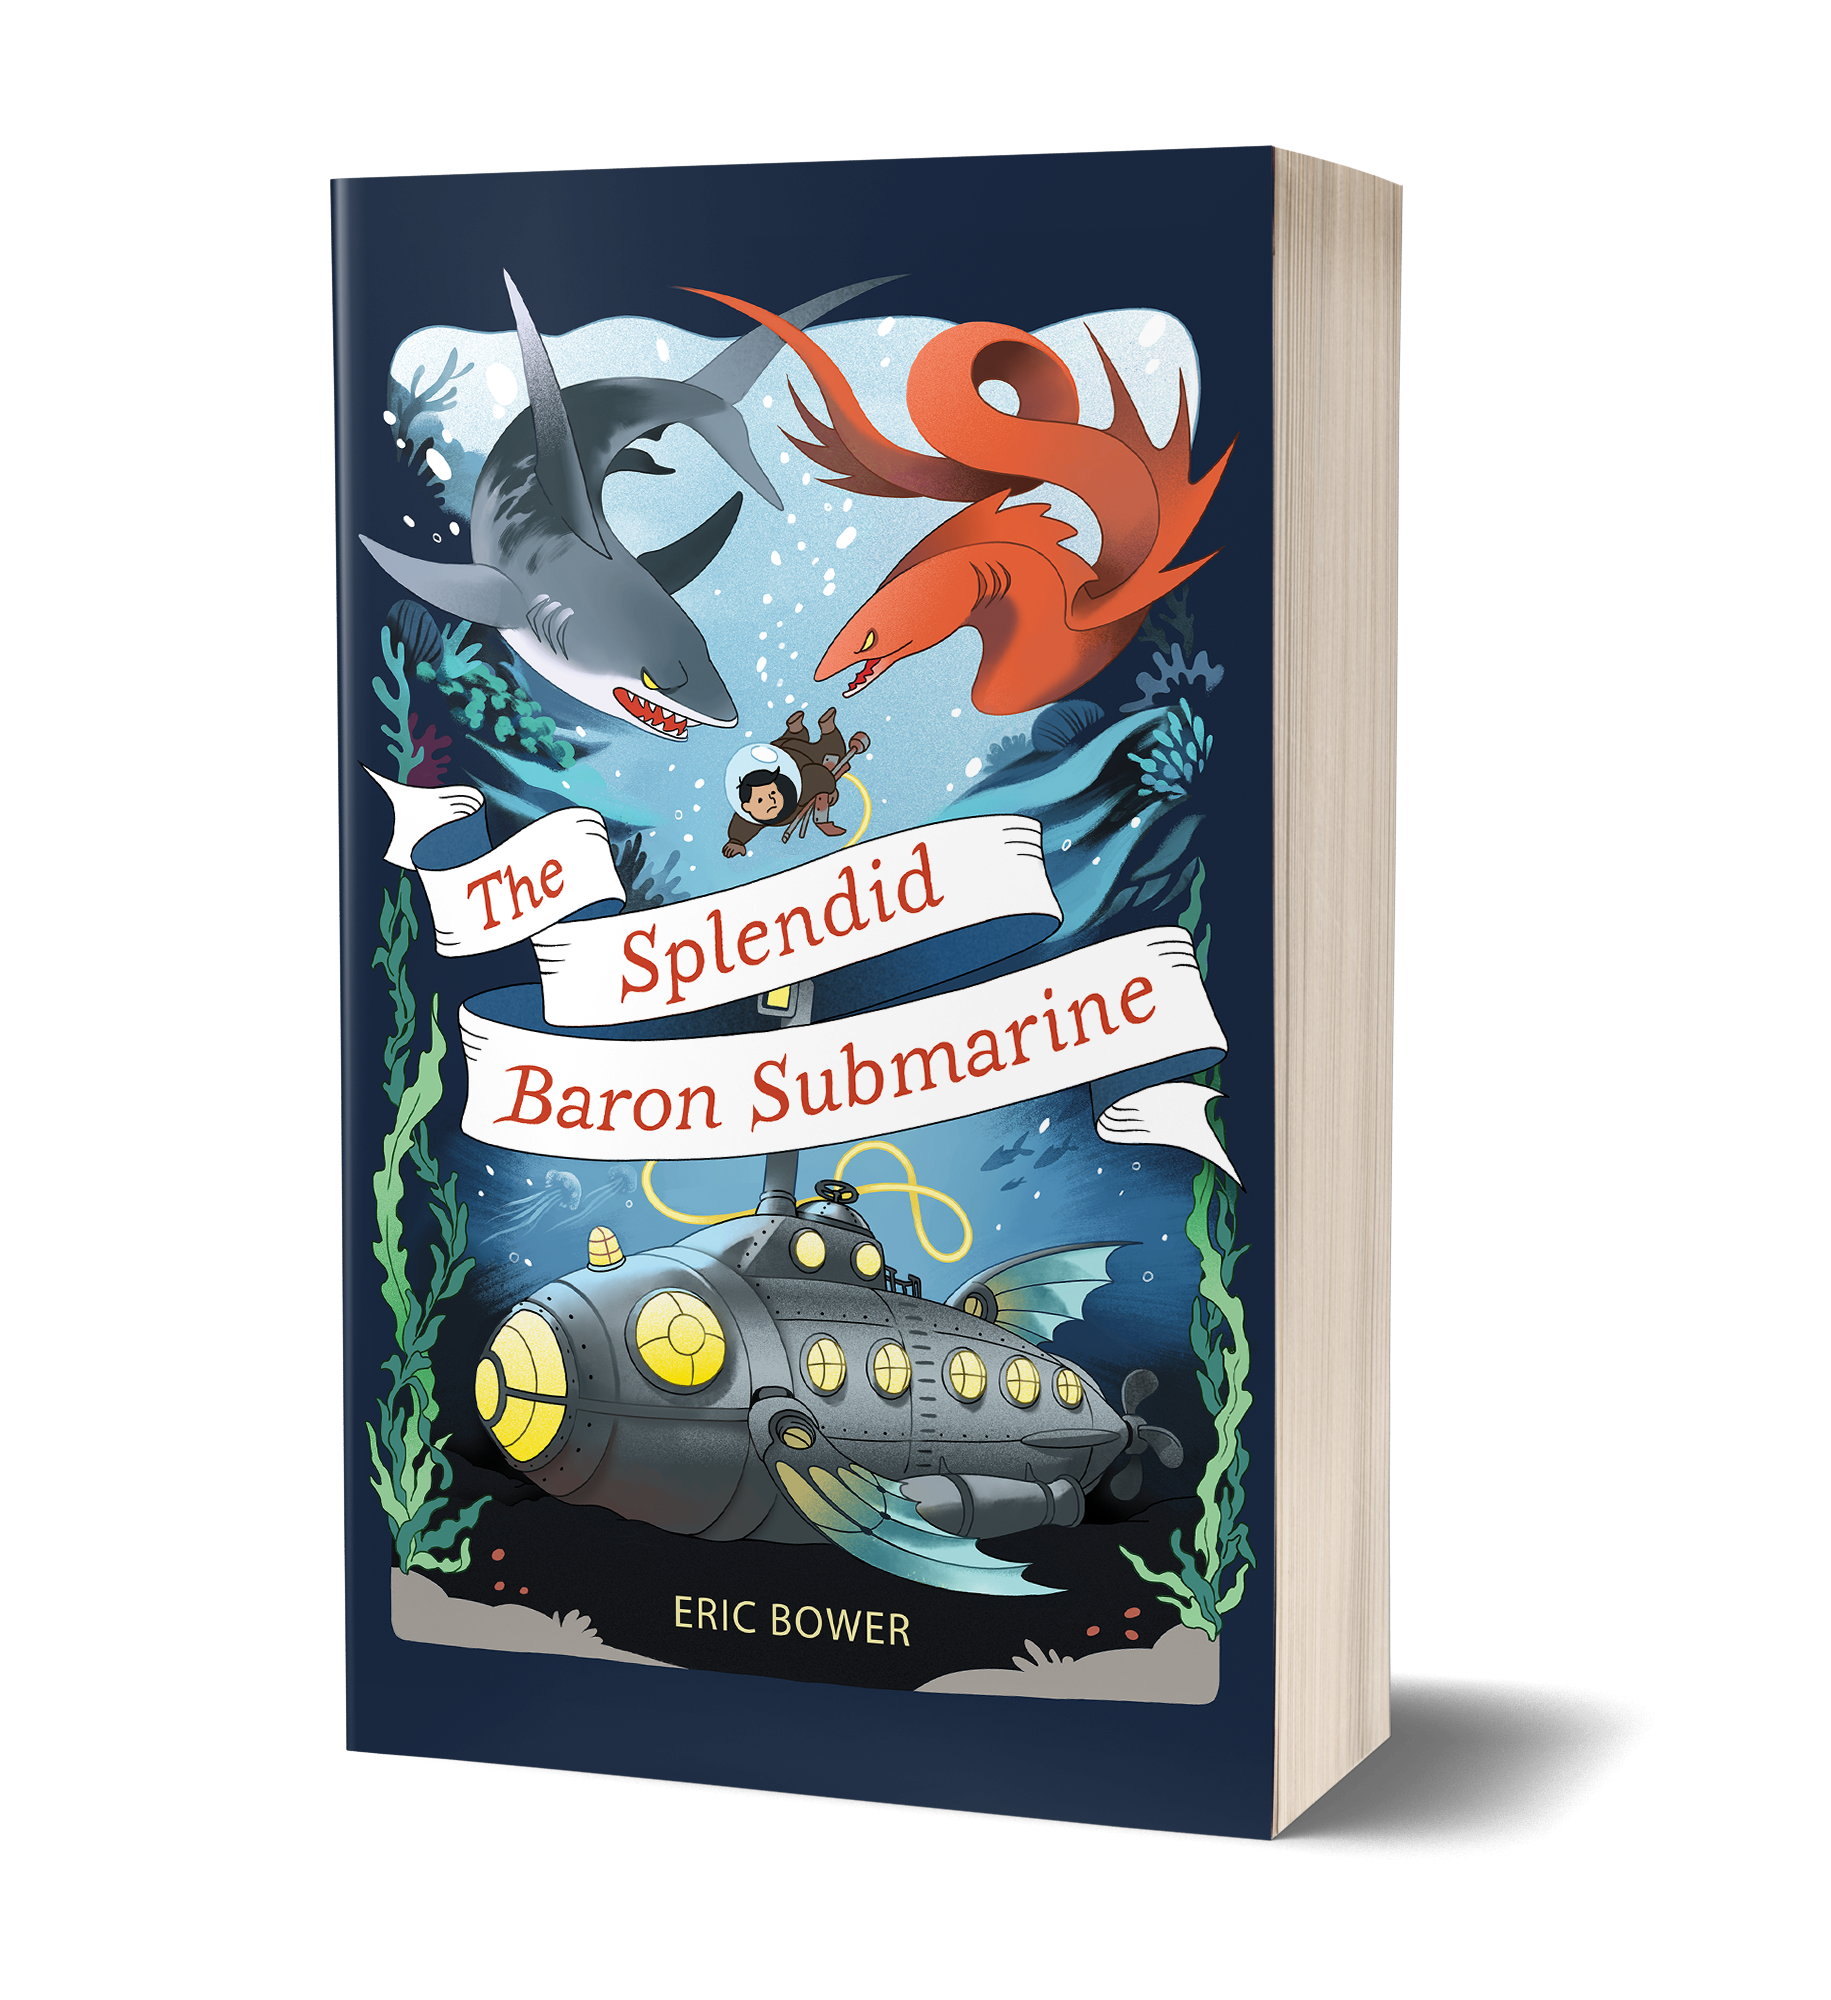 The Splendid Baron Submarine book cover, submarine under water, boy swimming through the water to submarine, shark and monster